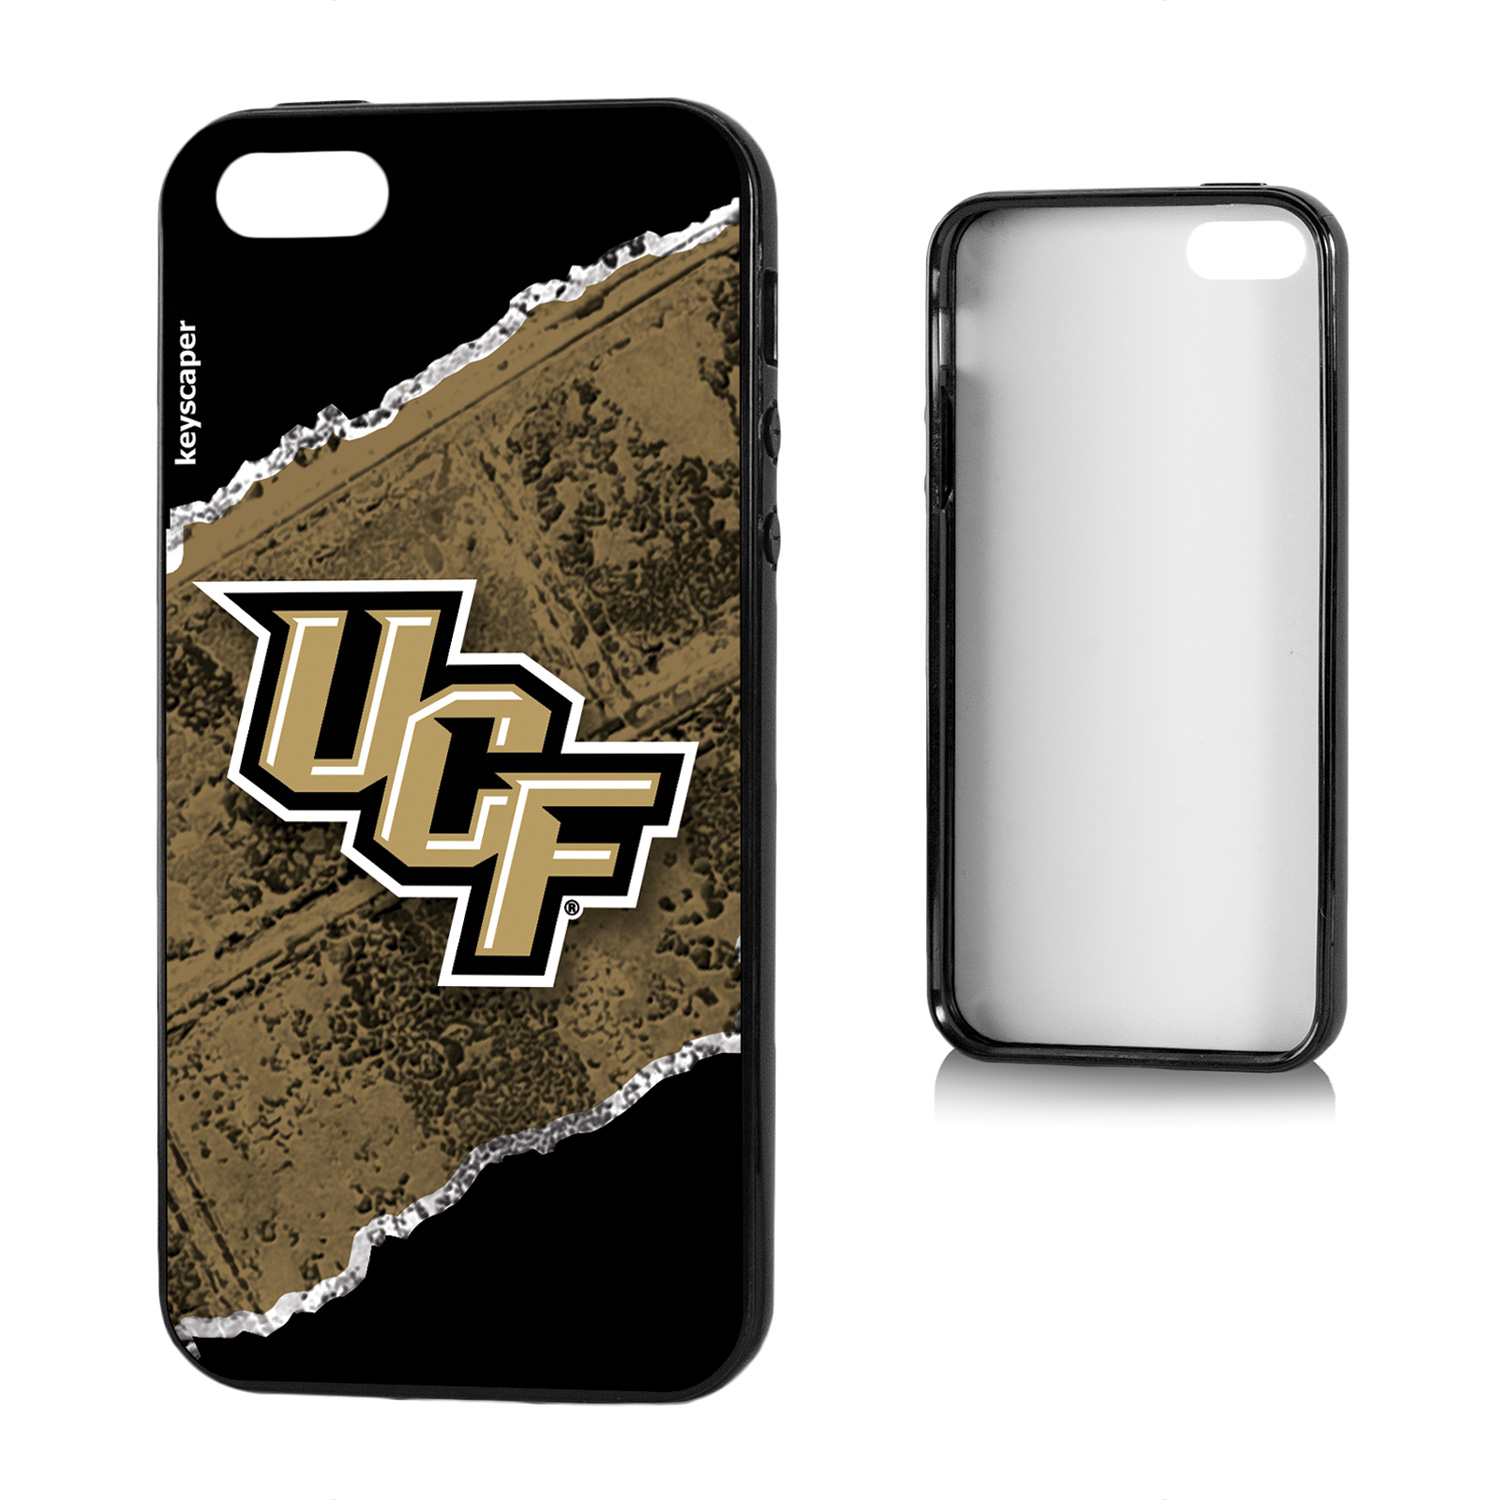 Central Florida Golden Knights iPhone 5 and iPhone 5s Bumper Case